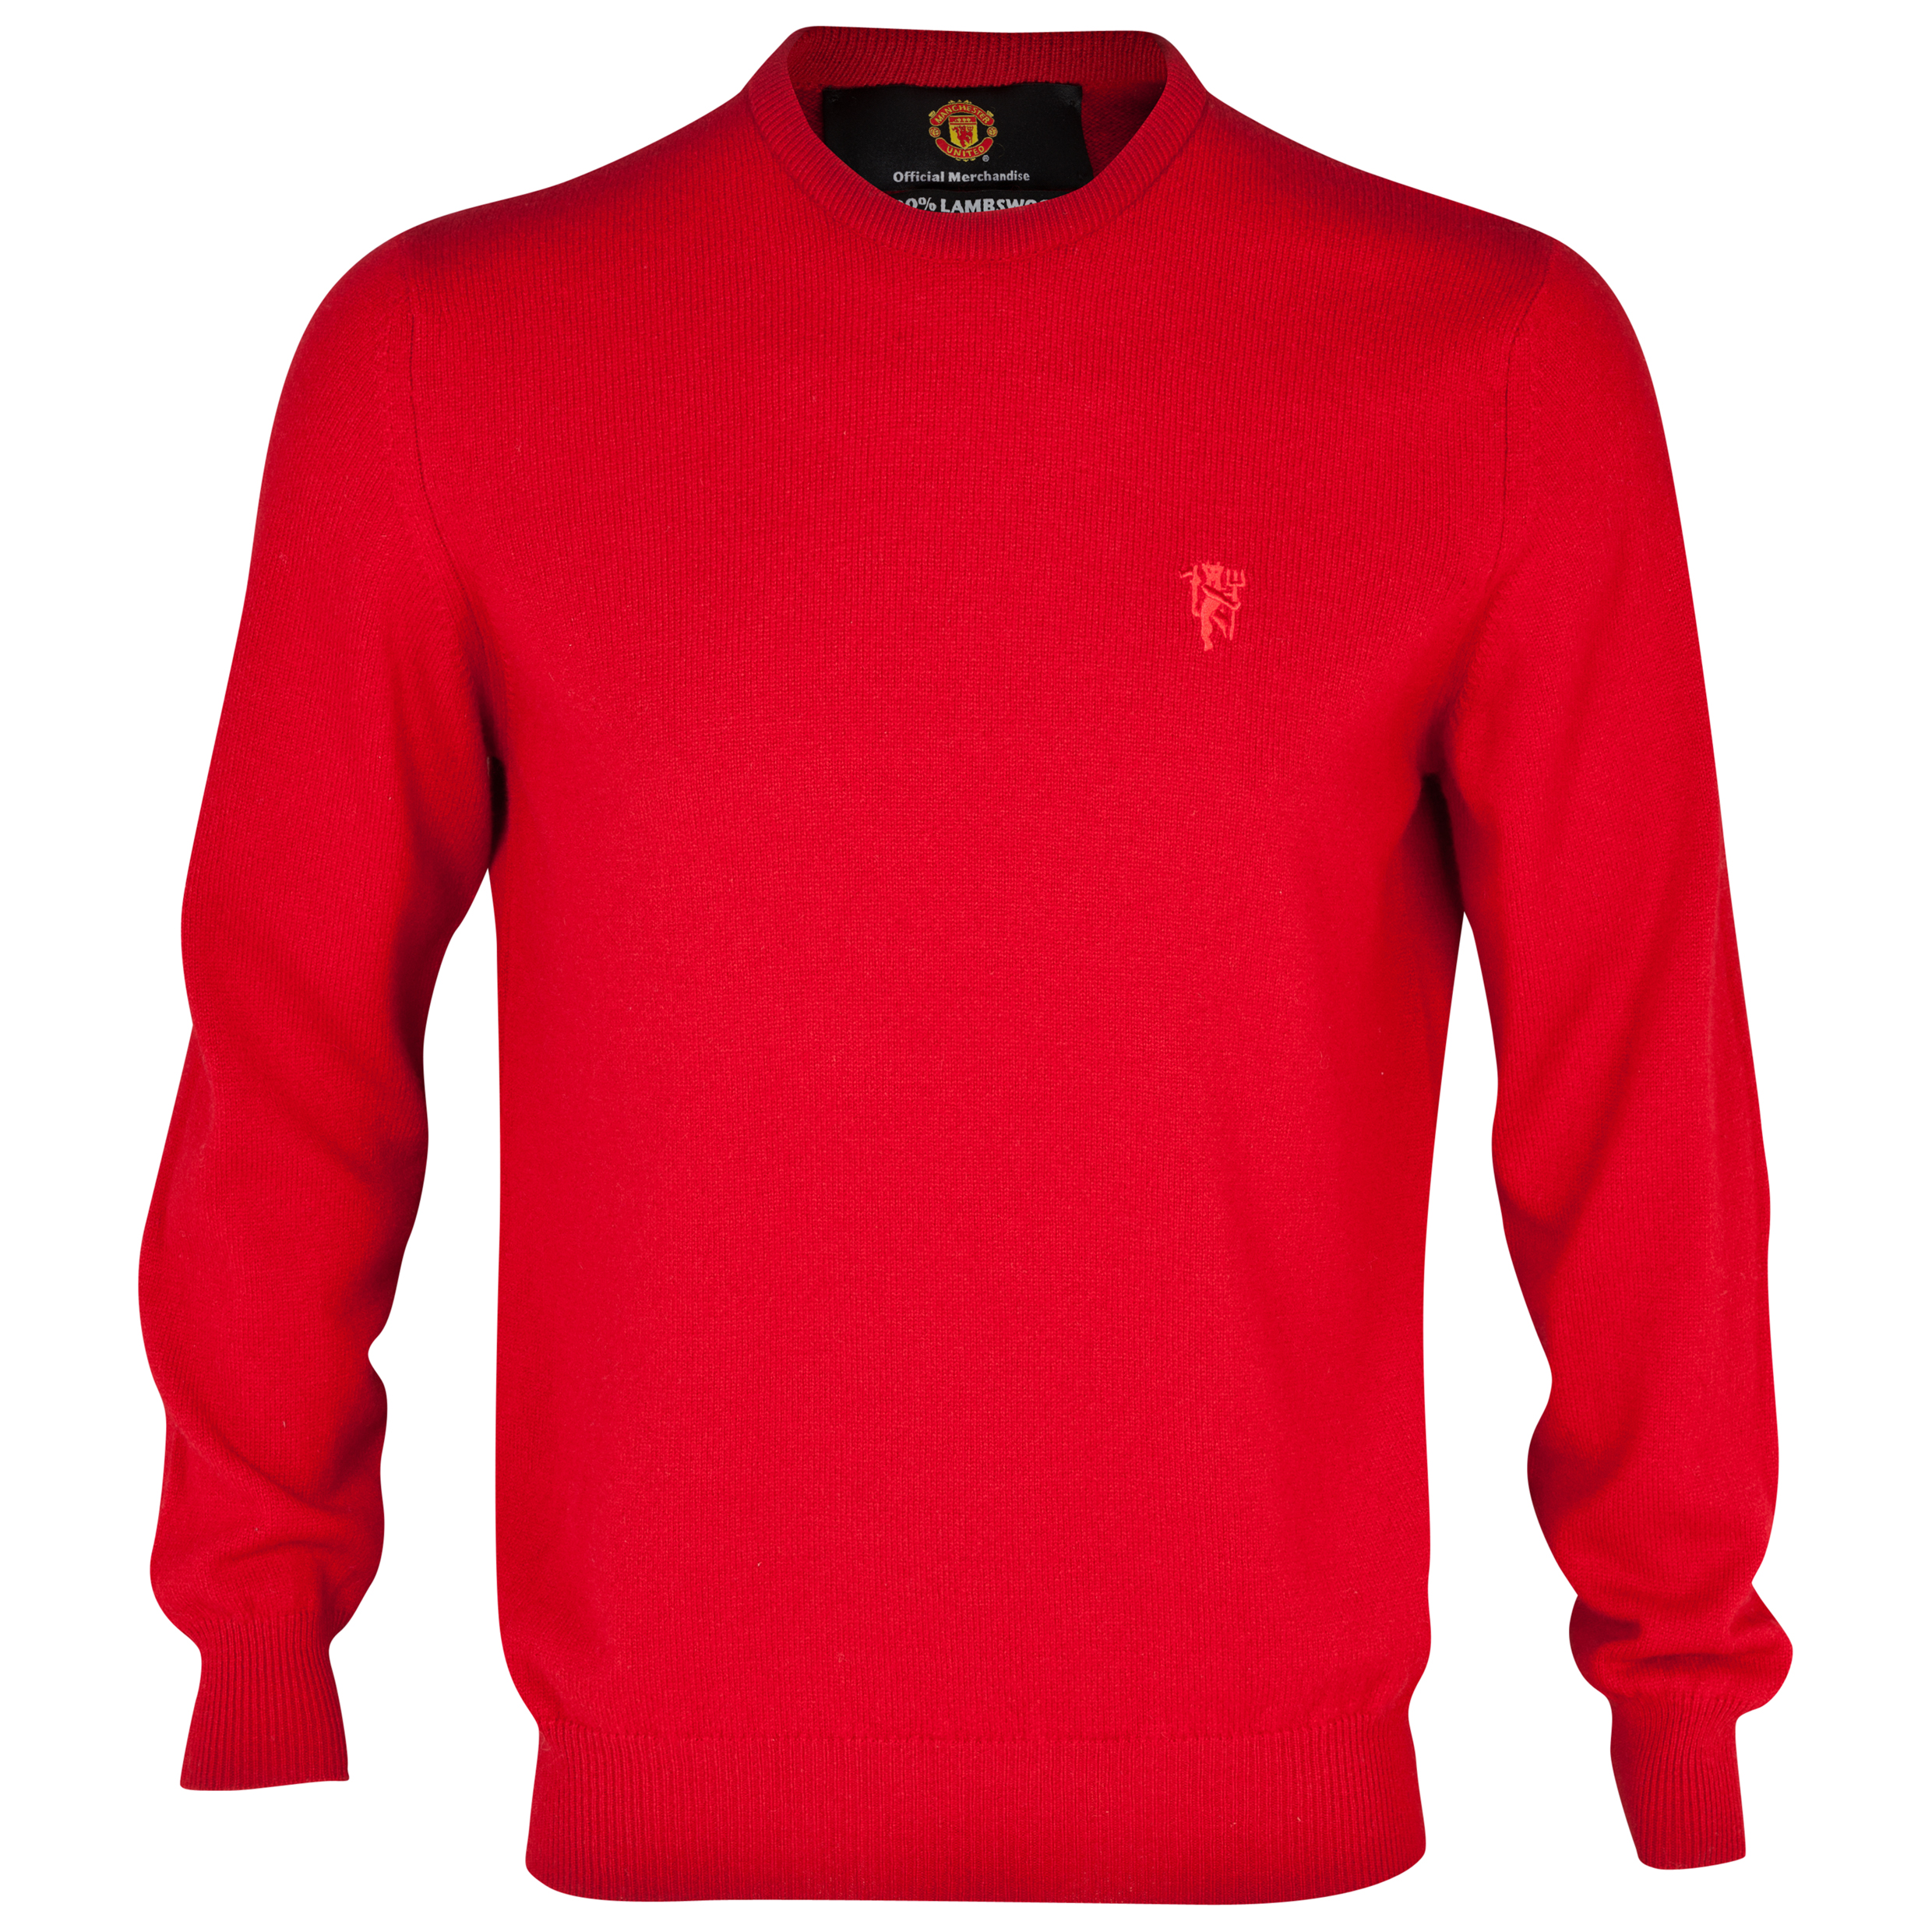 Manchester United Lambswool Crew Neck Sweater - Mens Red